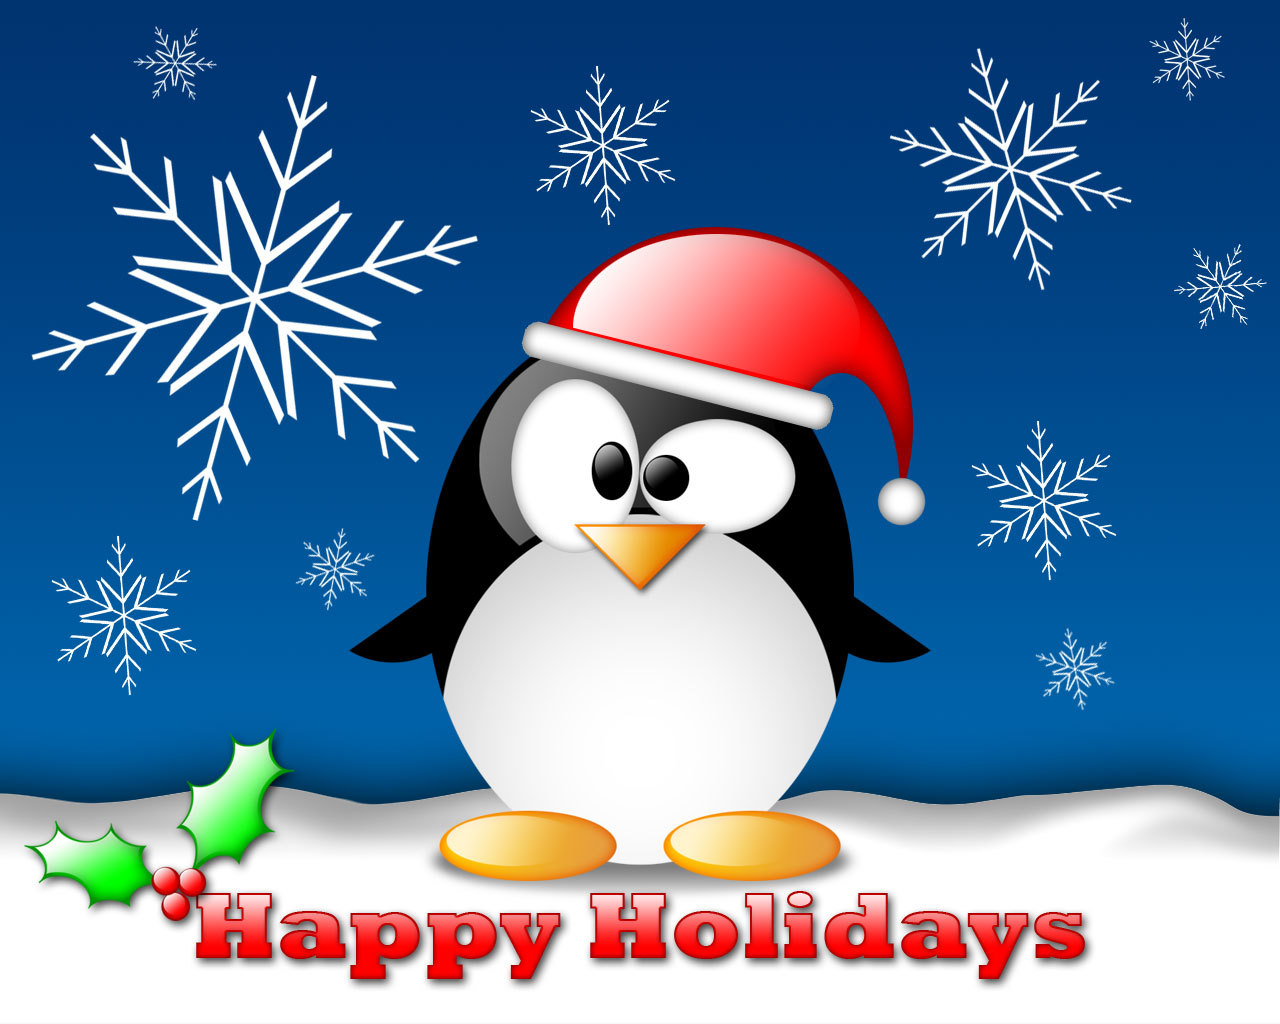 Senseless ramblings of the mindless christmas holidays and xmas holiday meaning in the united states happy holidays along with the similarly generalized seasons greetings has become the most common holiday m4hsunfo